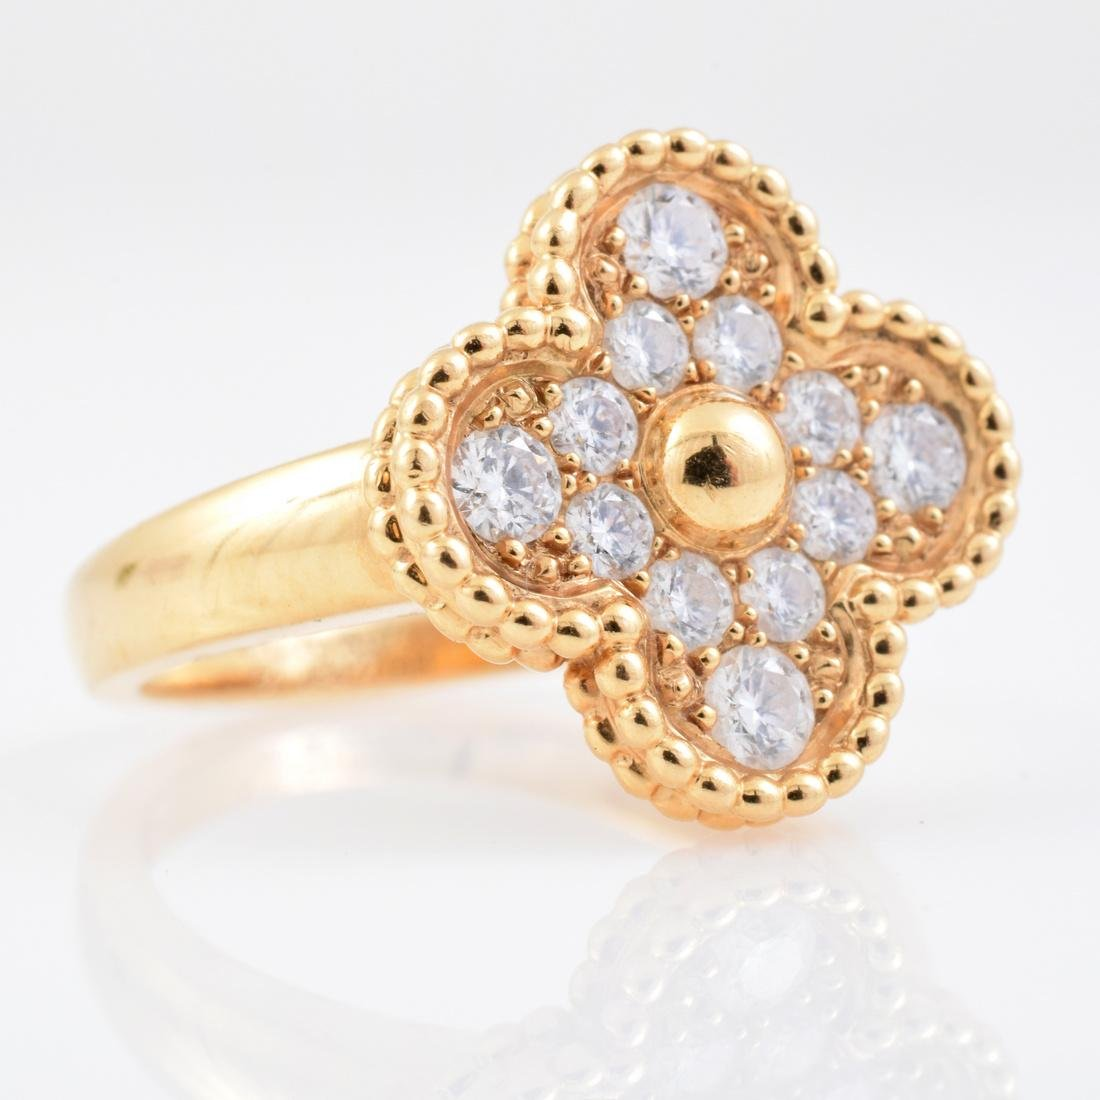 Van Cleef & Arpels 18K Gold & Diamond Estate Ring